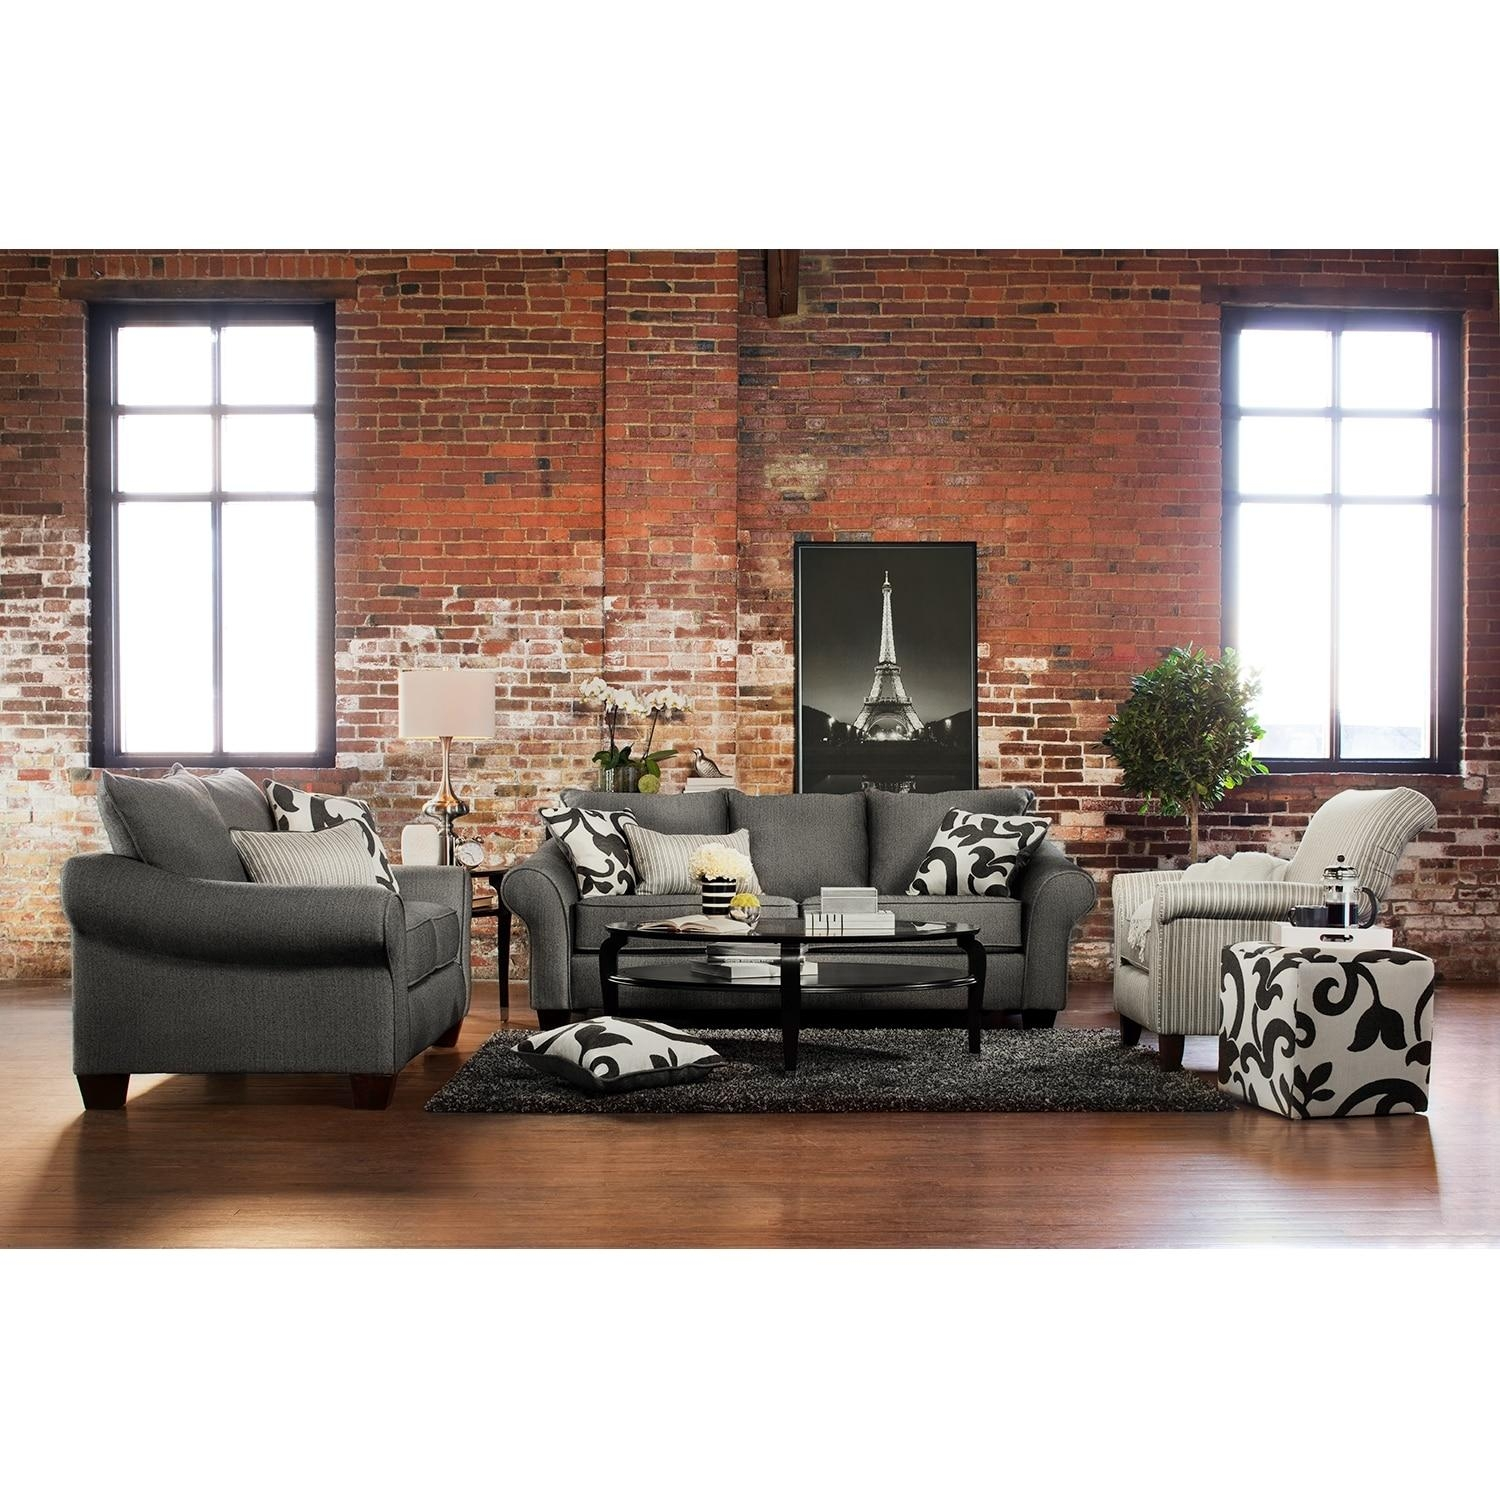 Colette Sofa, Loveseat And Accent Chair Set – Gray | American Within Sofa Loveseat And Chairs (View 15 of 20)